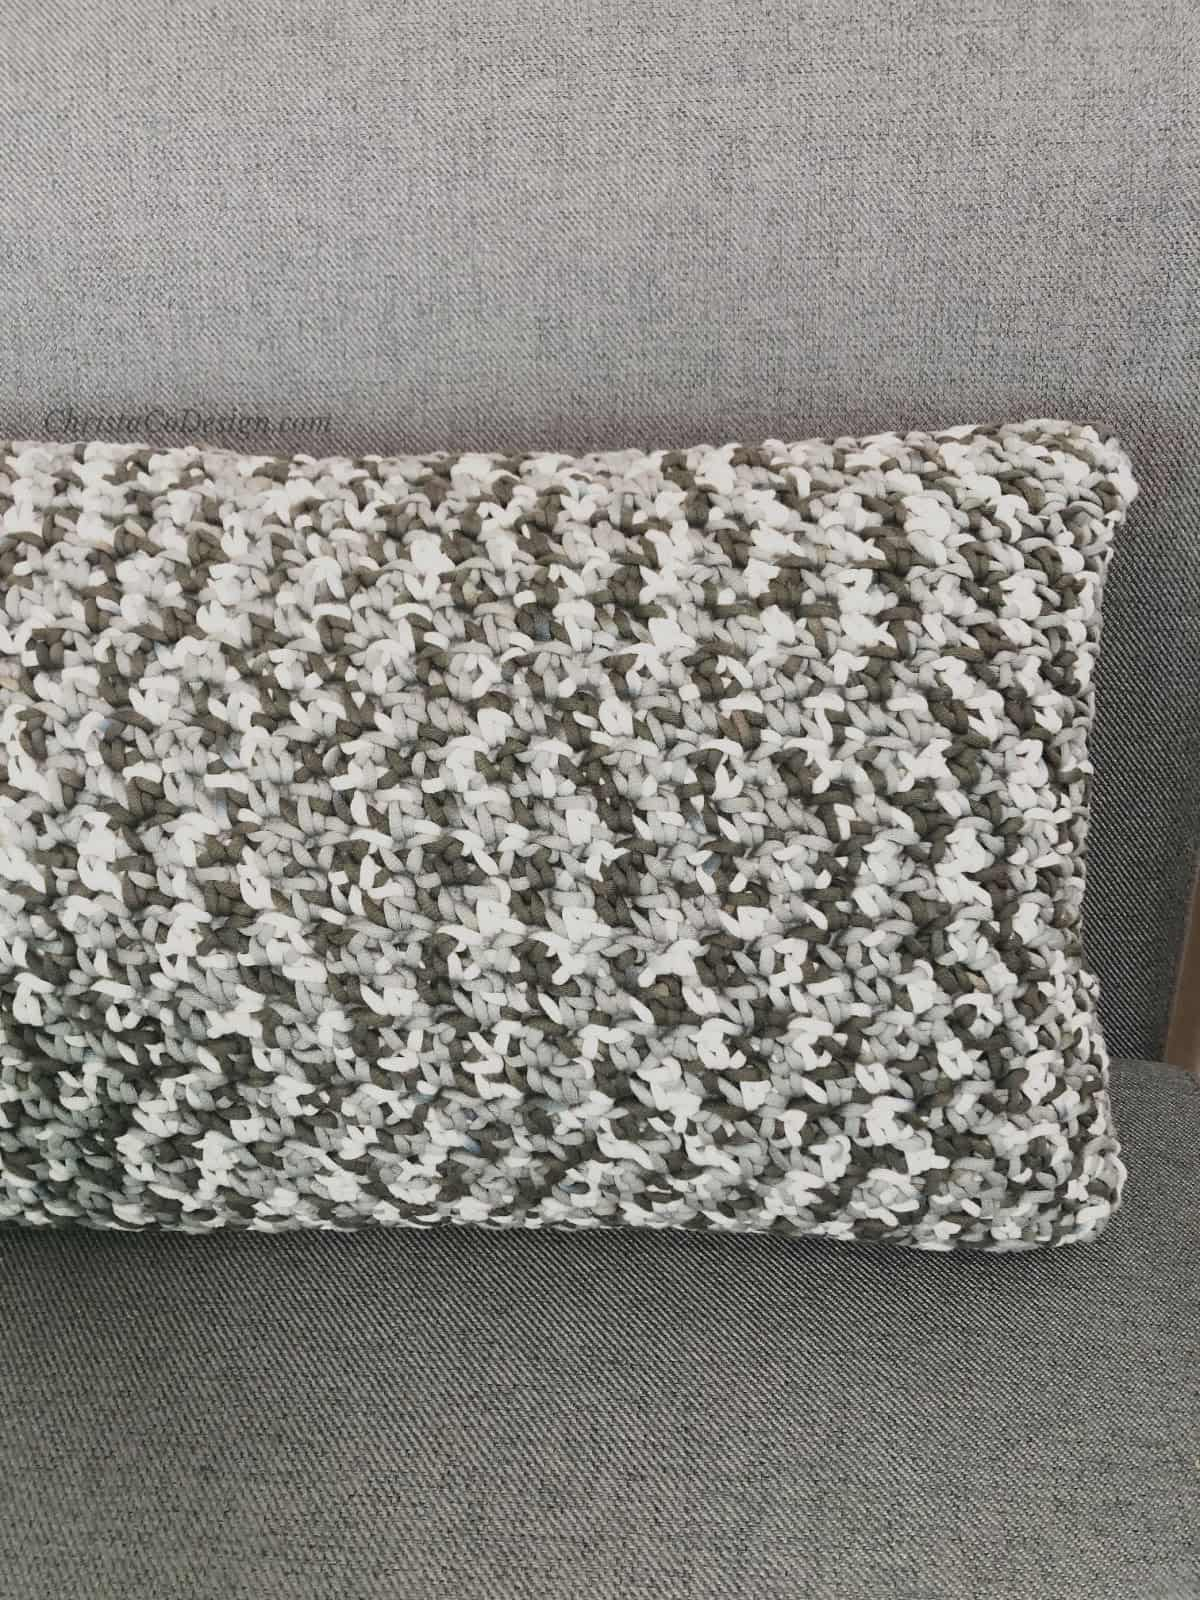 picture of speckled grey free crochet pillow pattern on chair